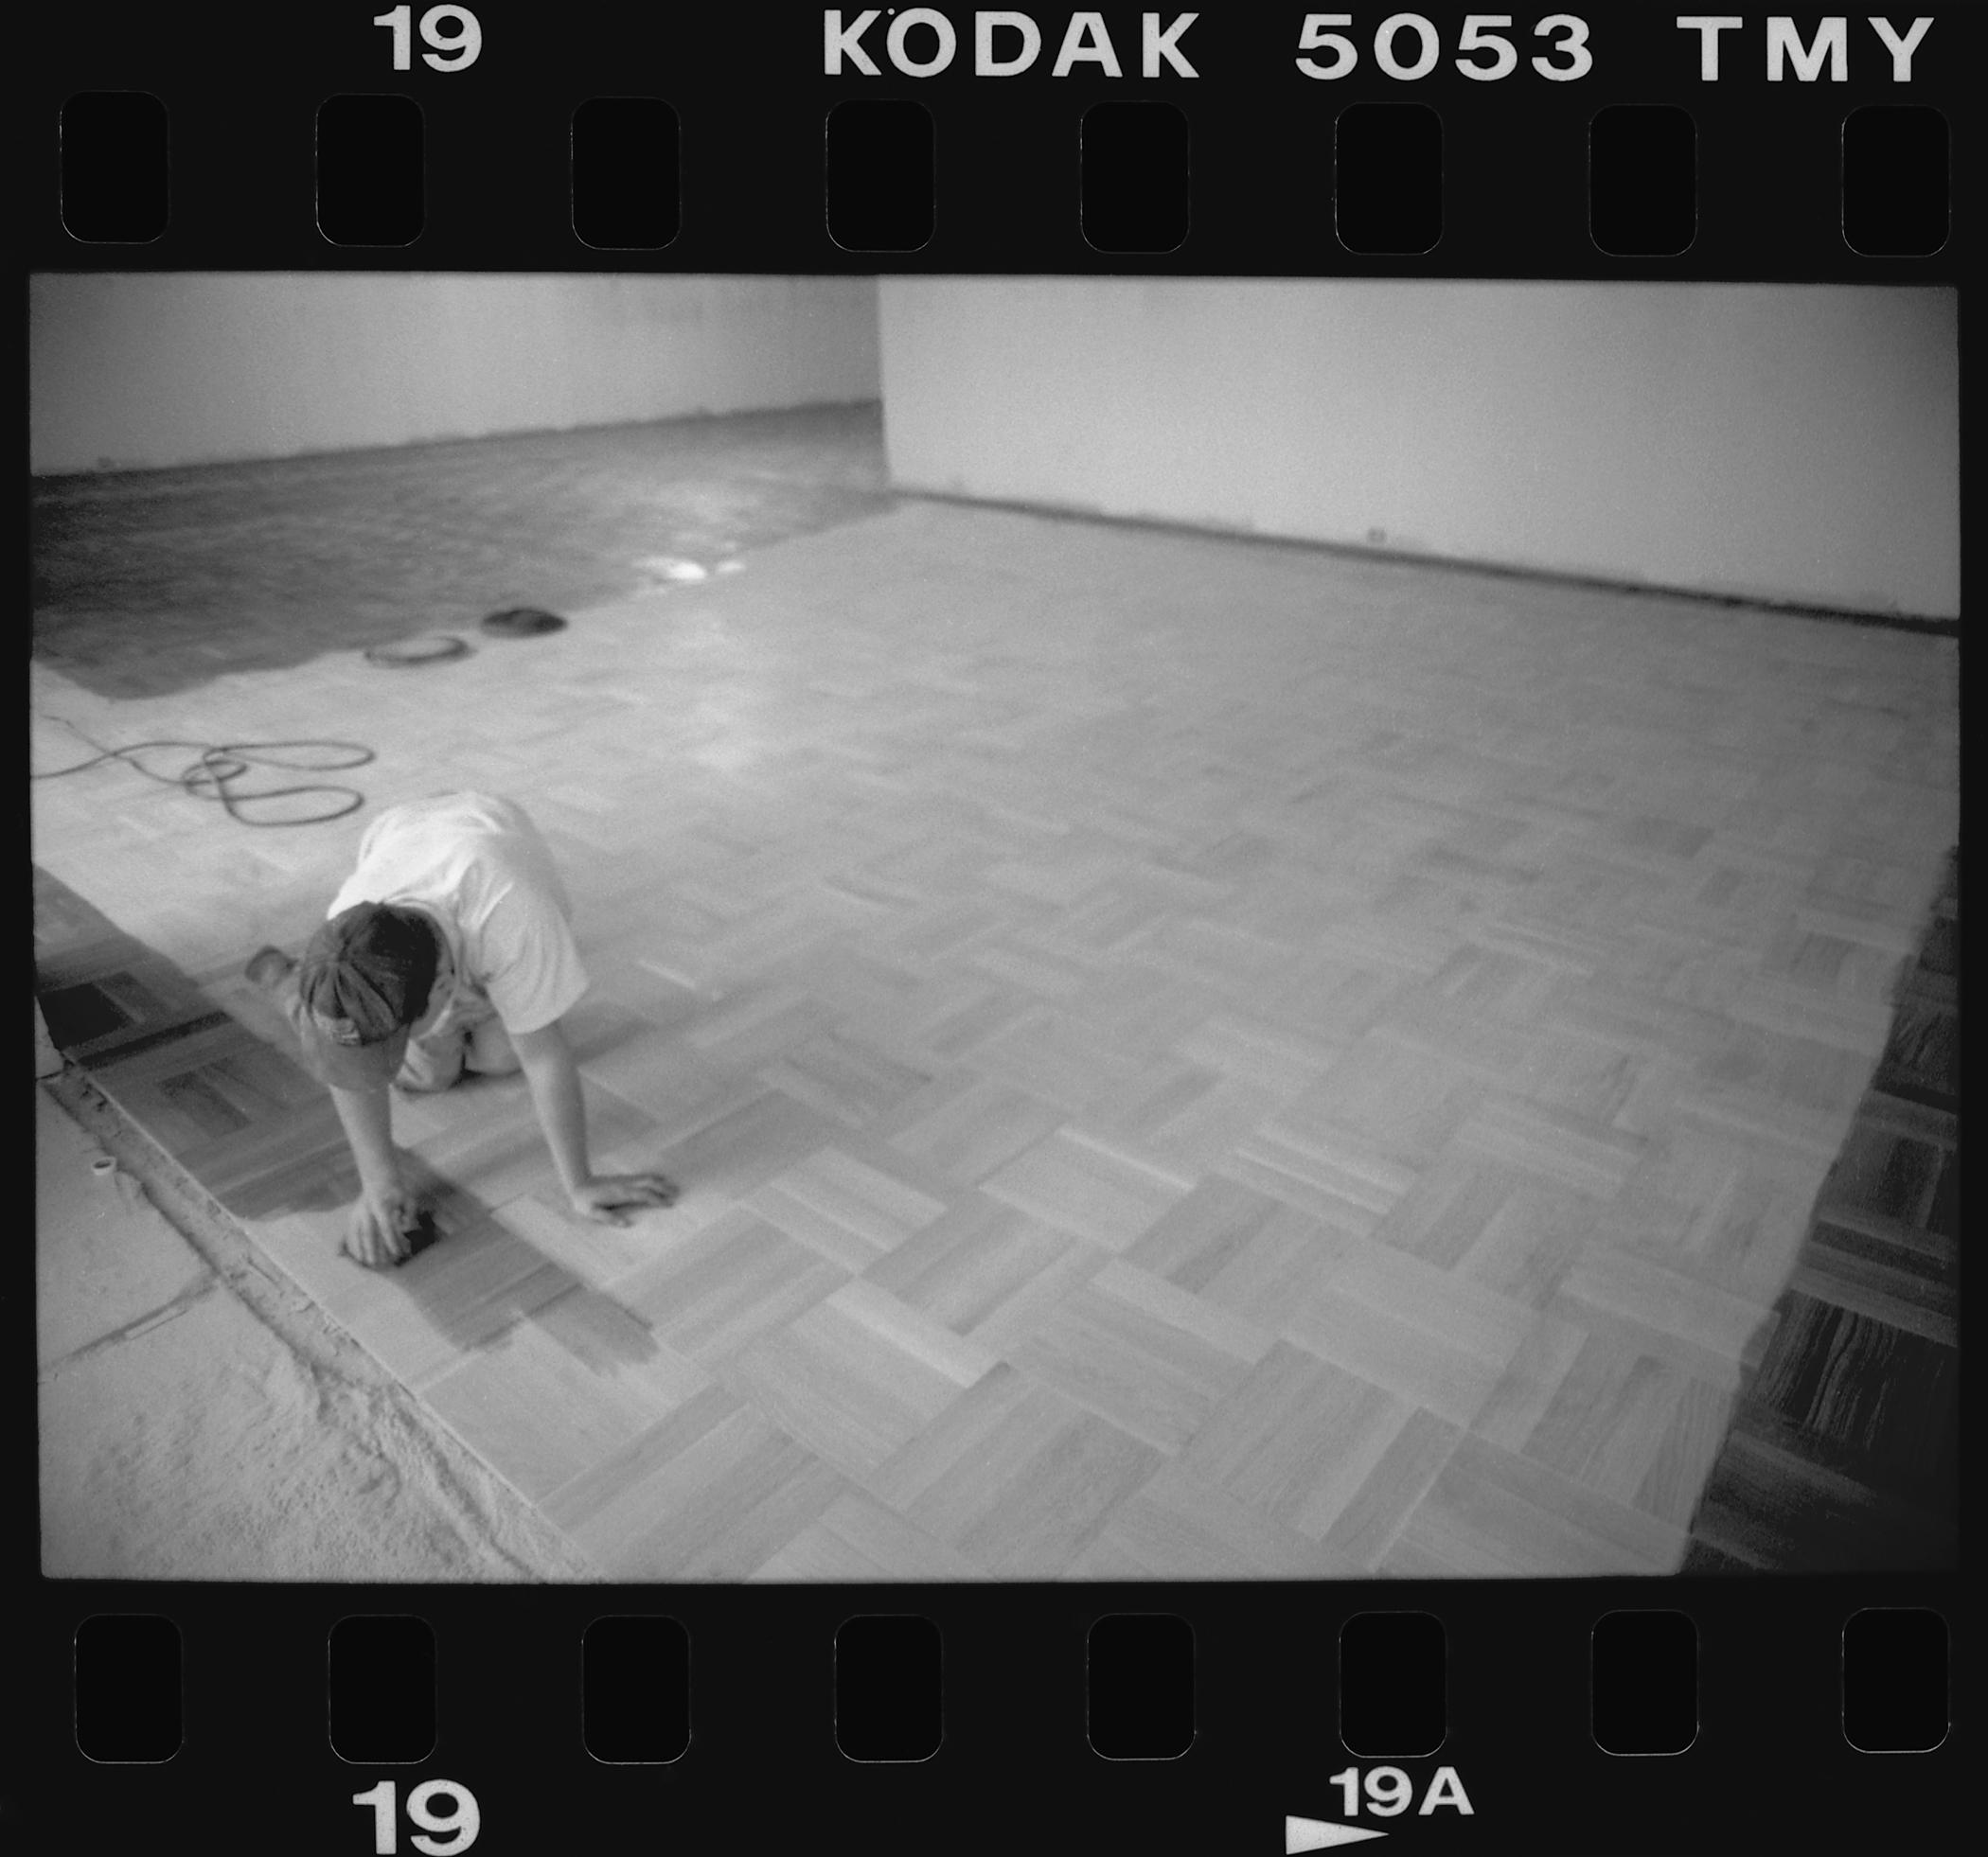 A person on hands and knees installs wooden parquet flooring.